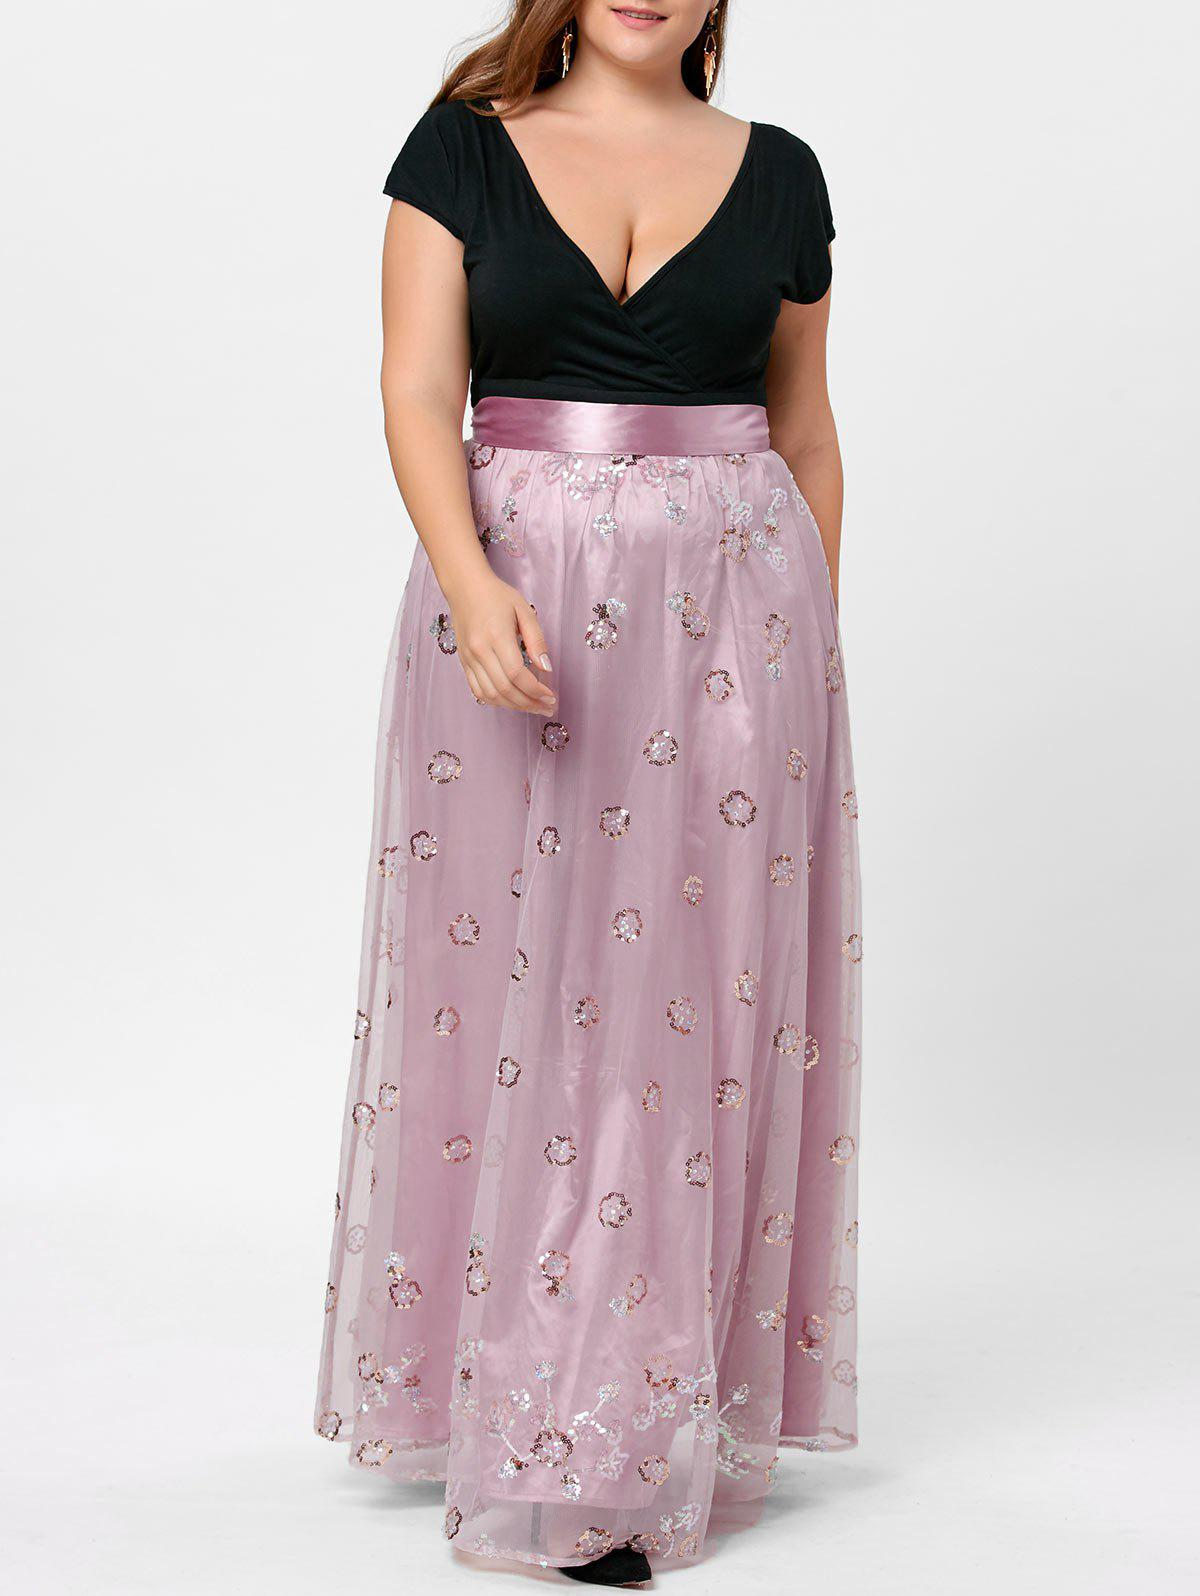 Plus Size Sequined Decorated Tulle Evening Dress - PALE PINKISH GREY 4XL